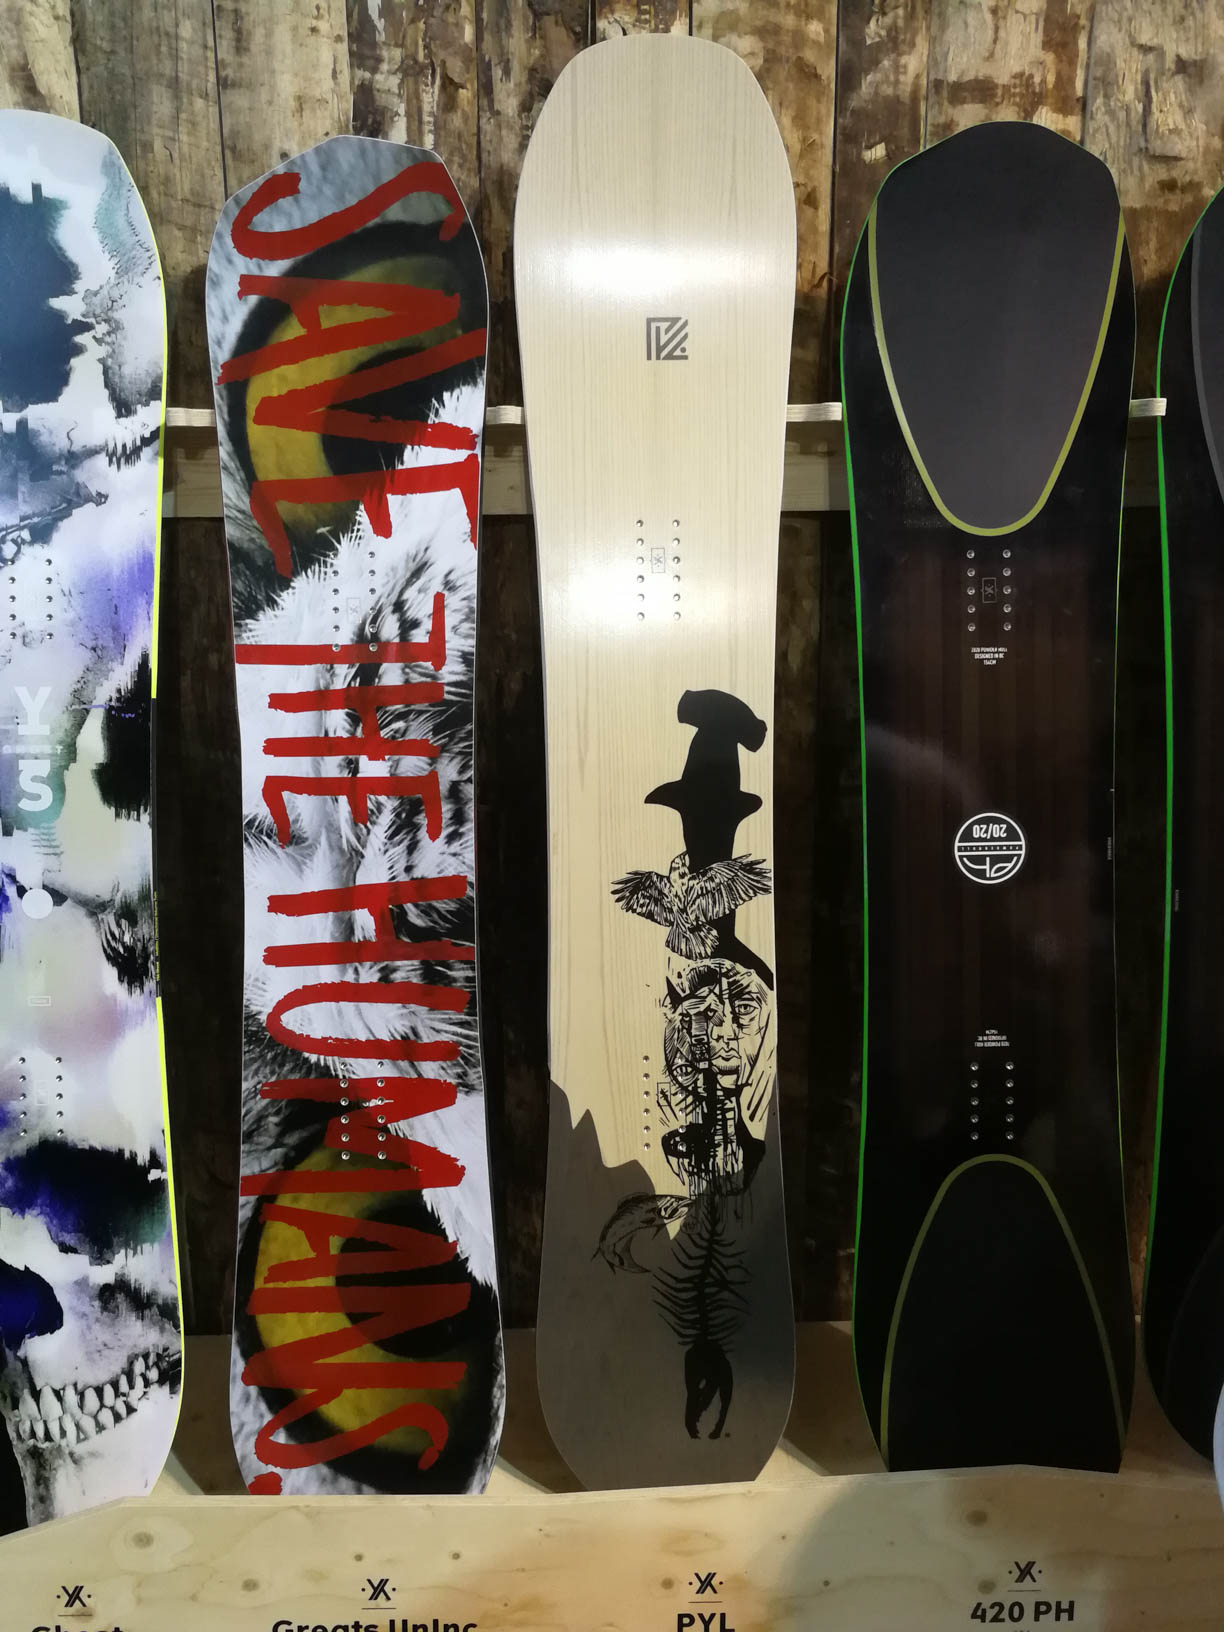 YES Snowboards (links nach rechts): Ghost, Greats UnInc., PYL, 420 PH